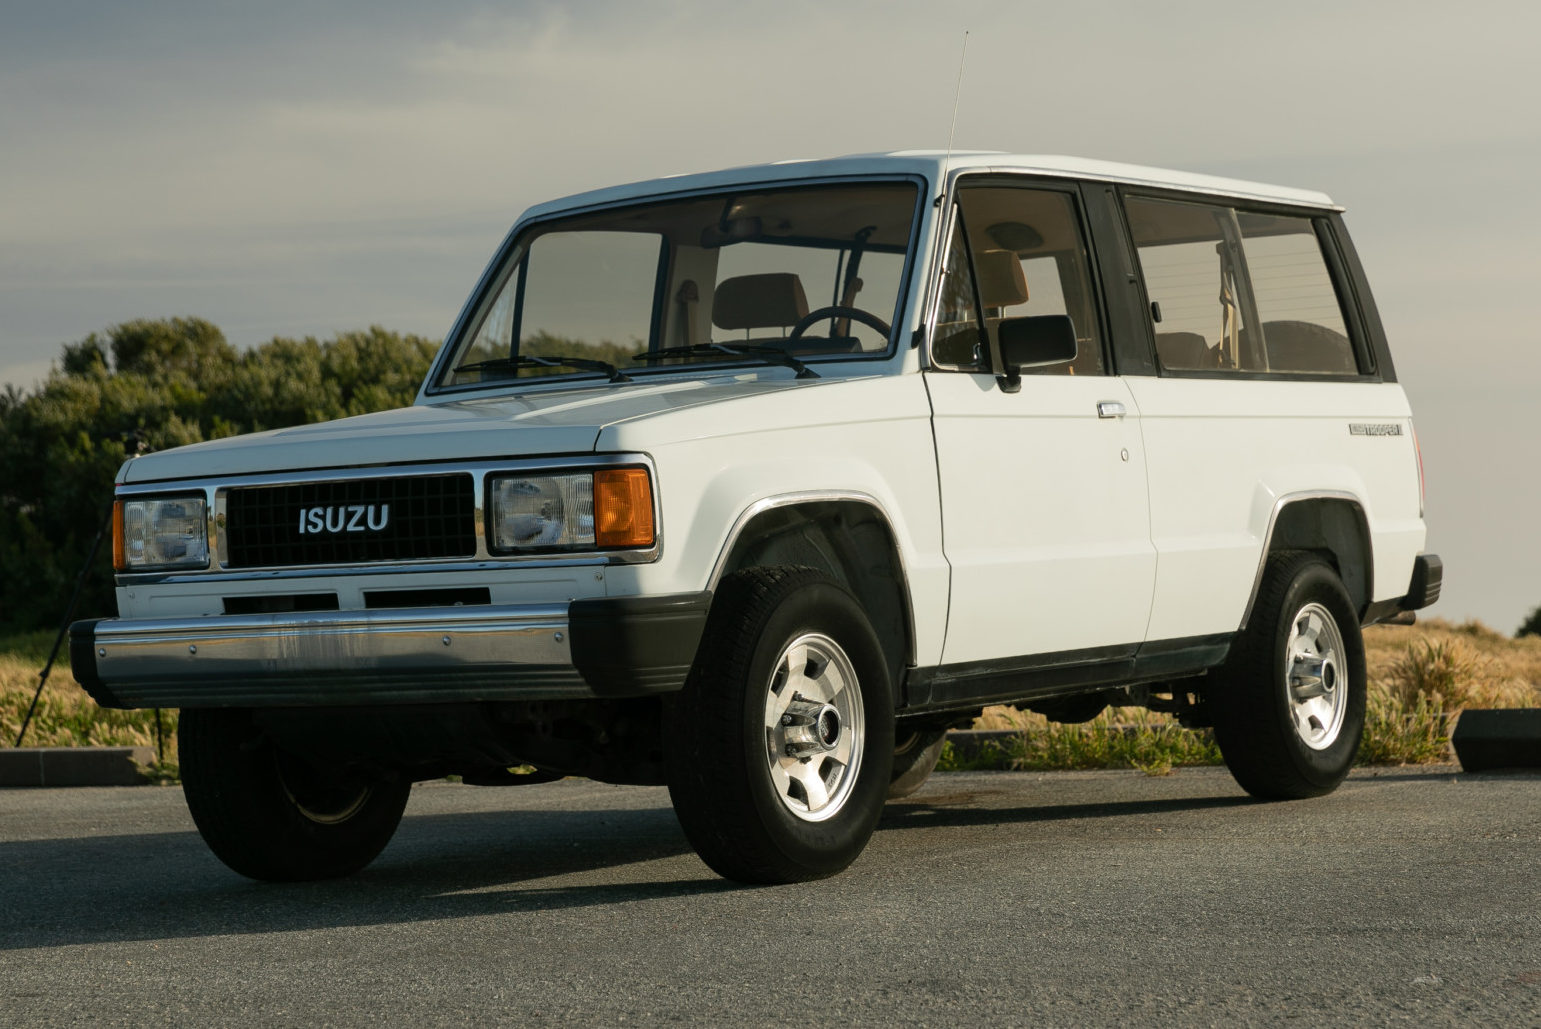 hight resolution of no reserve 1987 isuzu trooper ii 5 speed for sale on bat auctions sold for 10 000 on may 27 2019 lot 19 250 bring a trailer